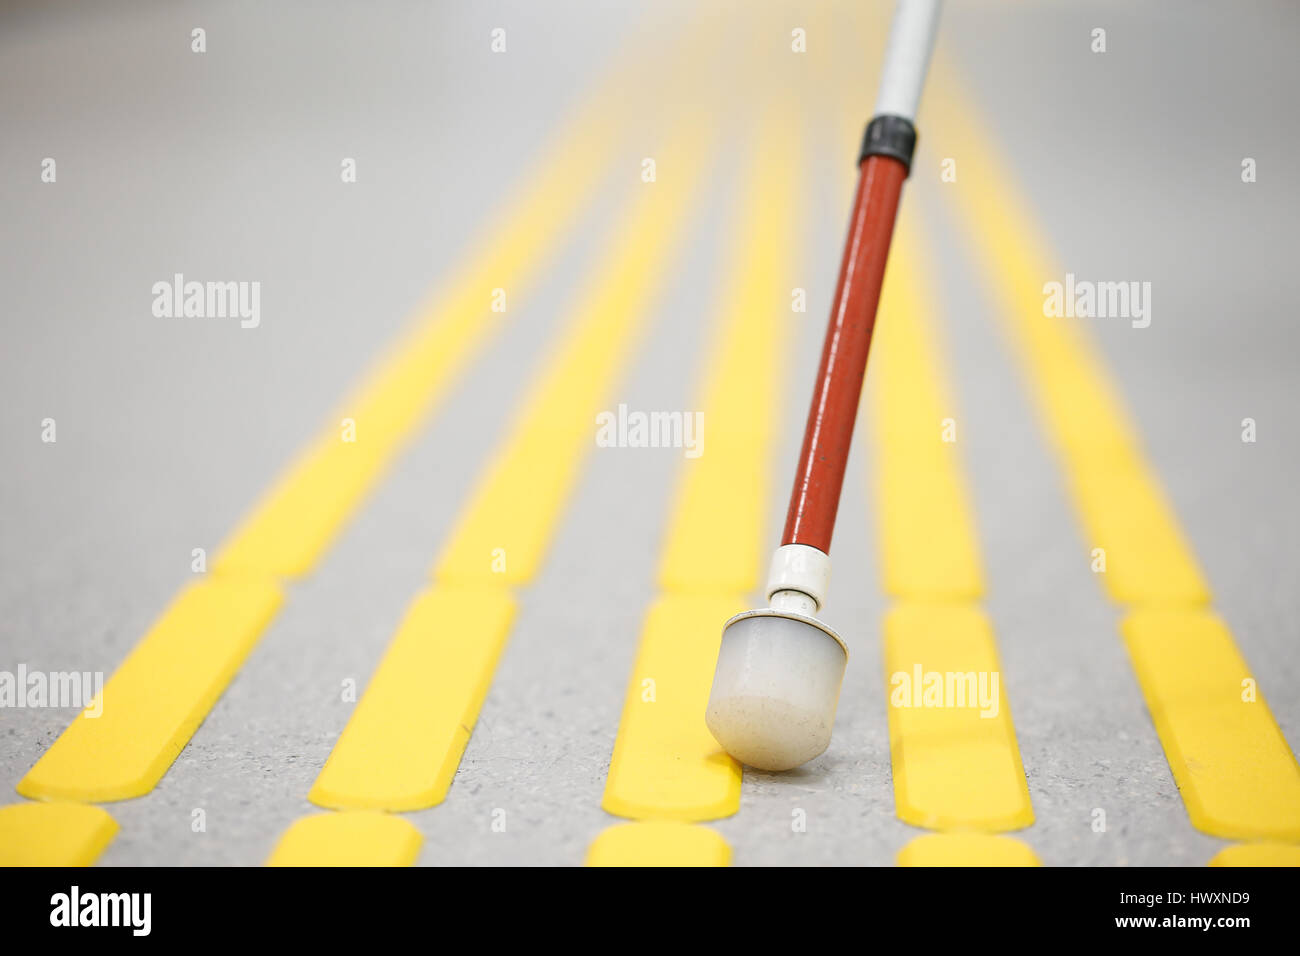 Blind pedestrian walking and detecting markings on tactile paving with textured ground surface indicators for blind and visually impaired. Blindness a Stock Photo